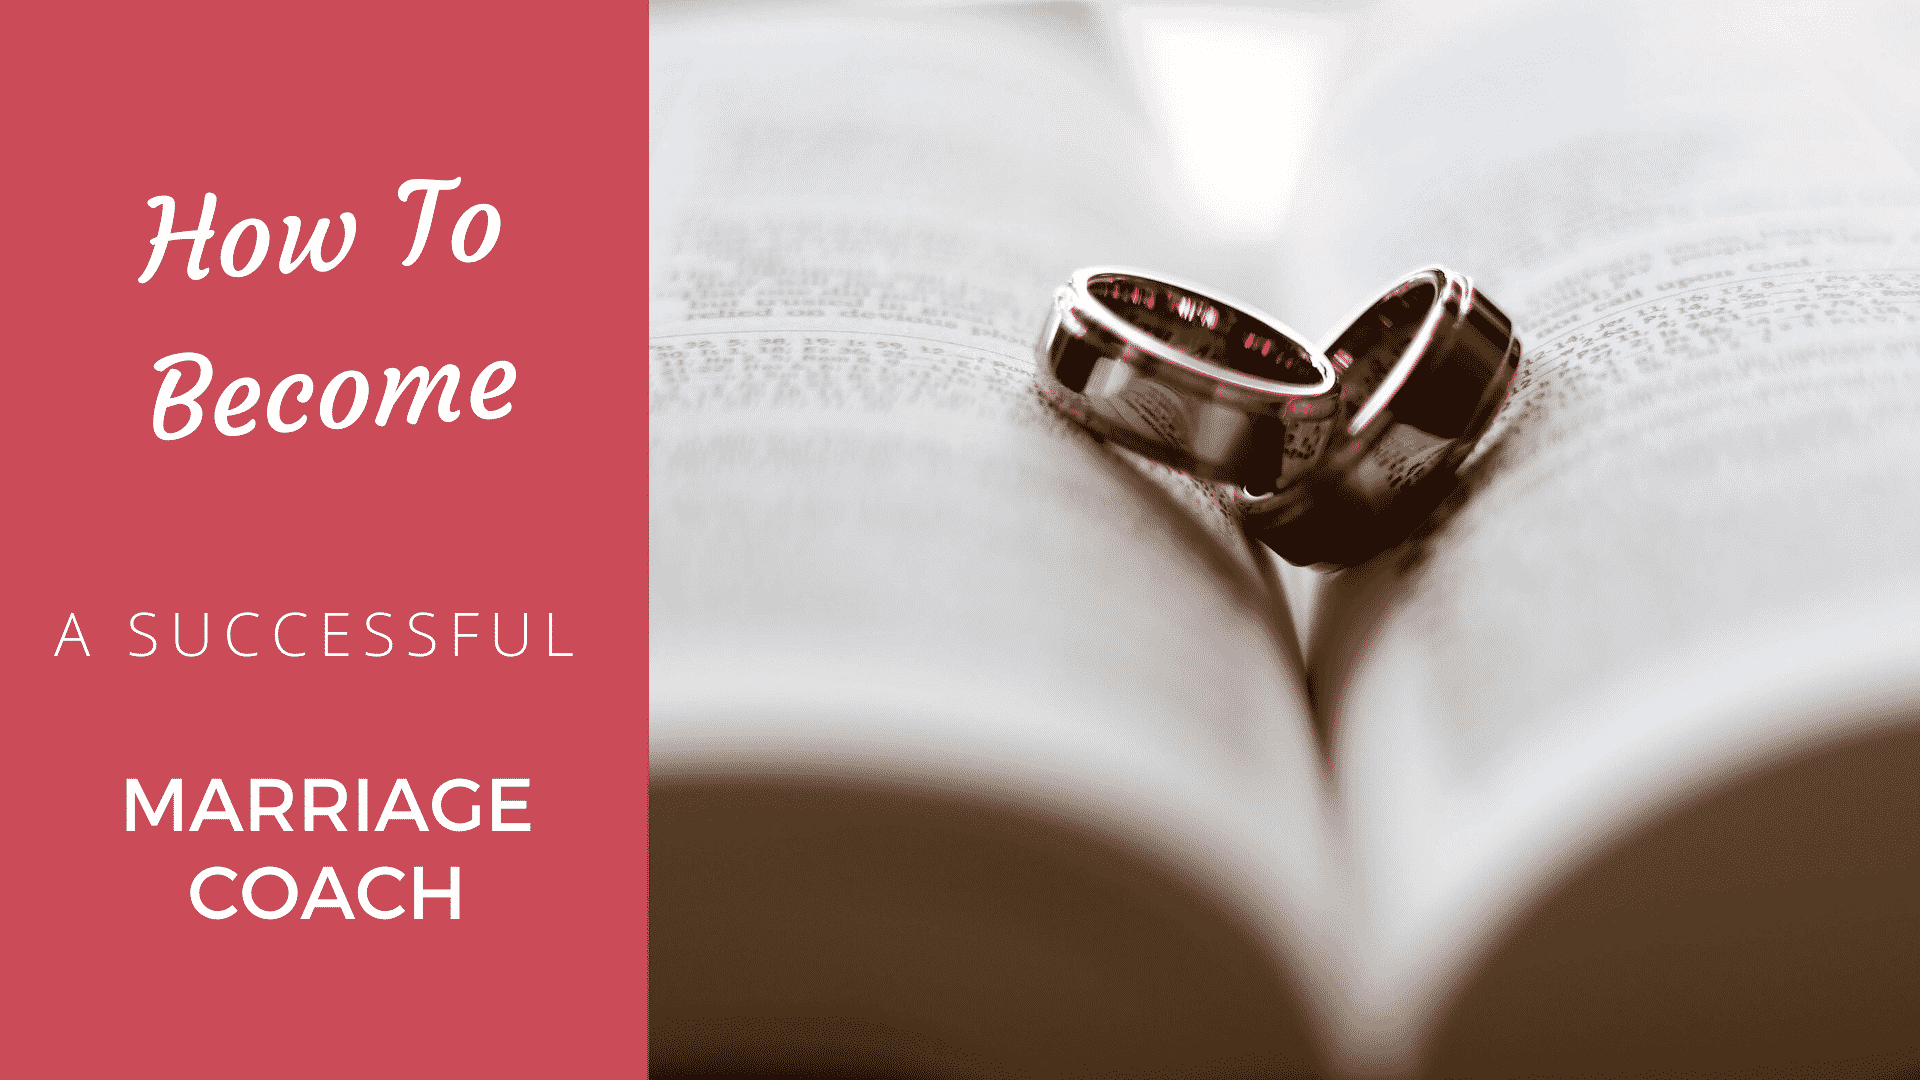 How to Become a Successful Marriage Coach Marriage Coach